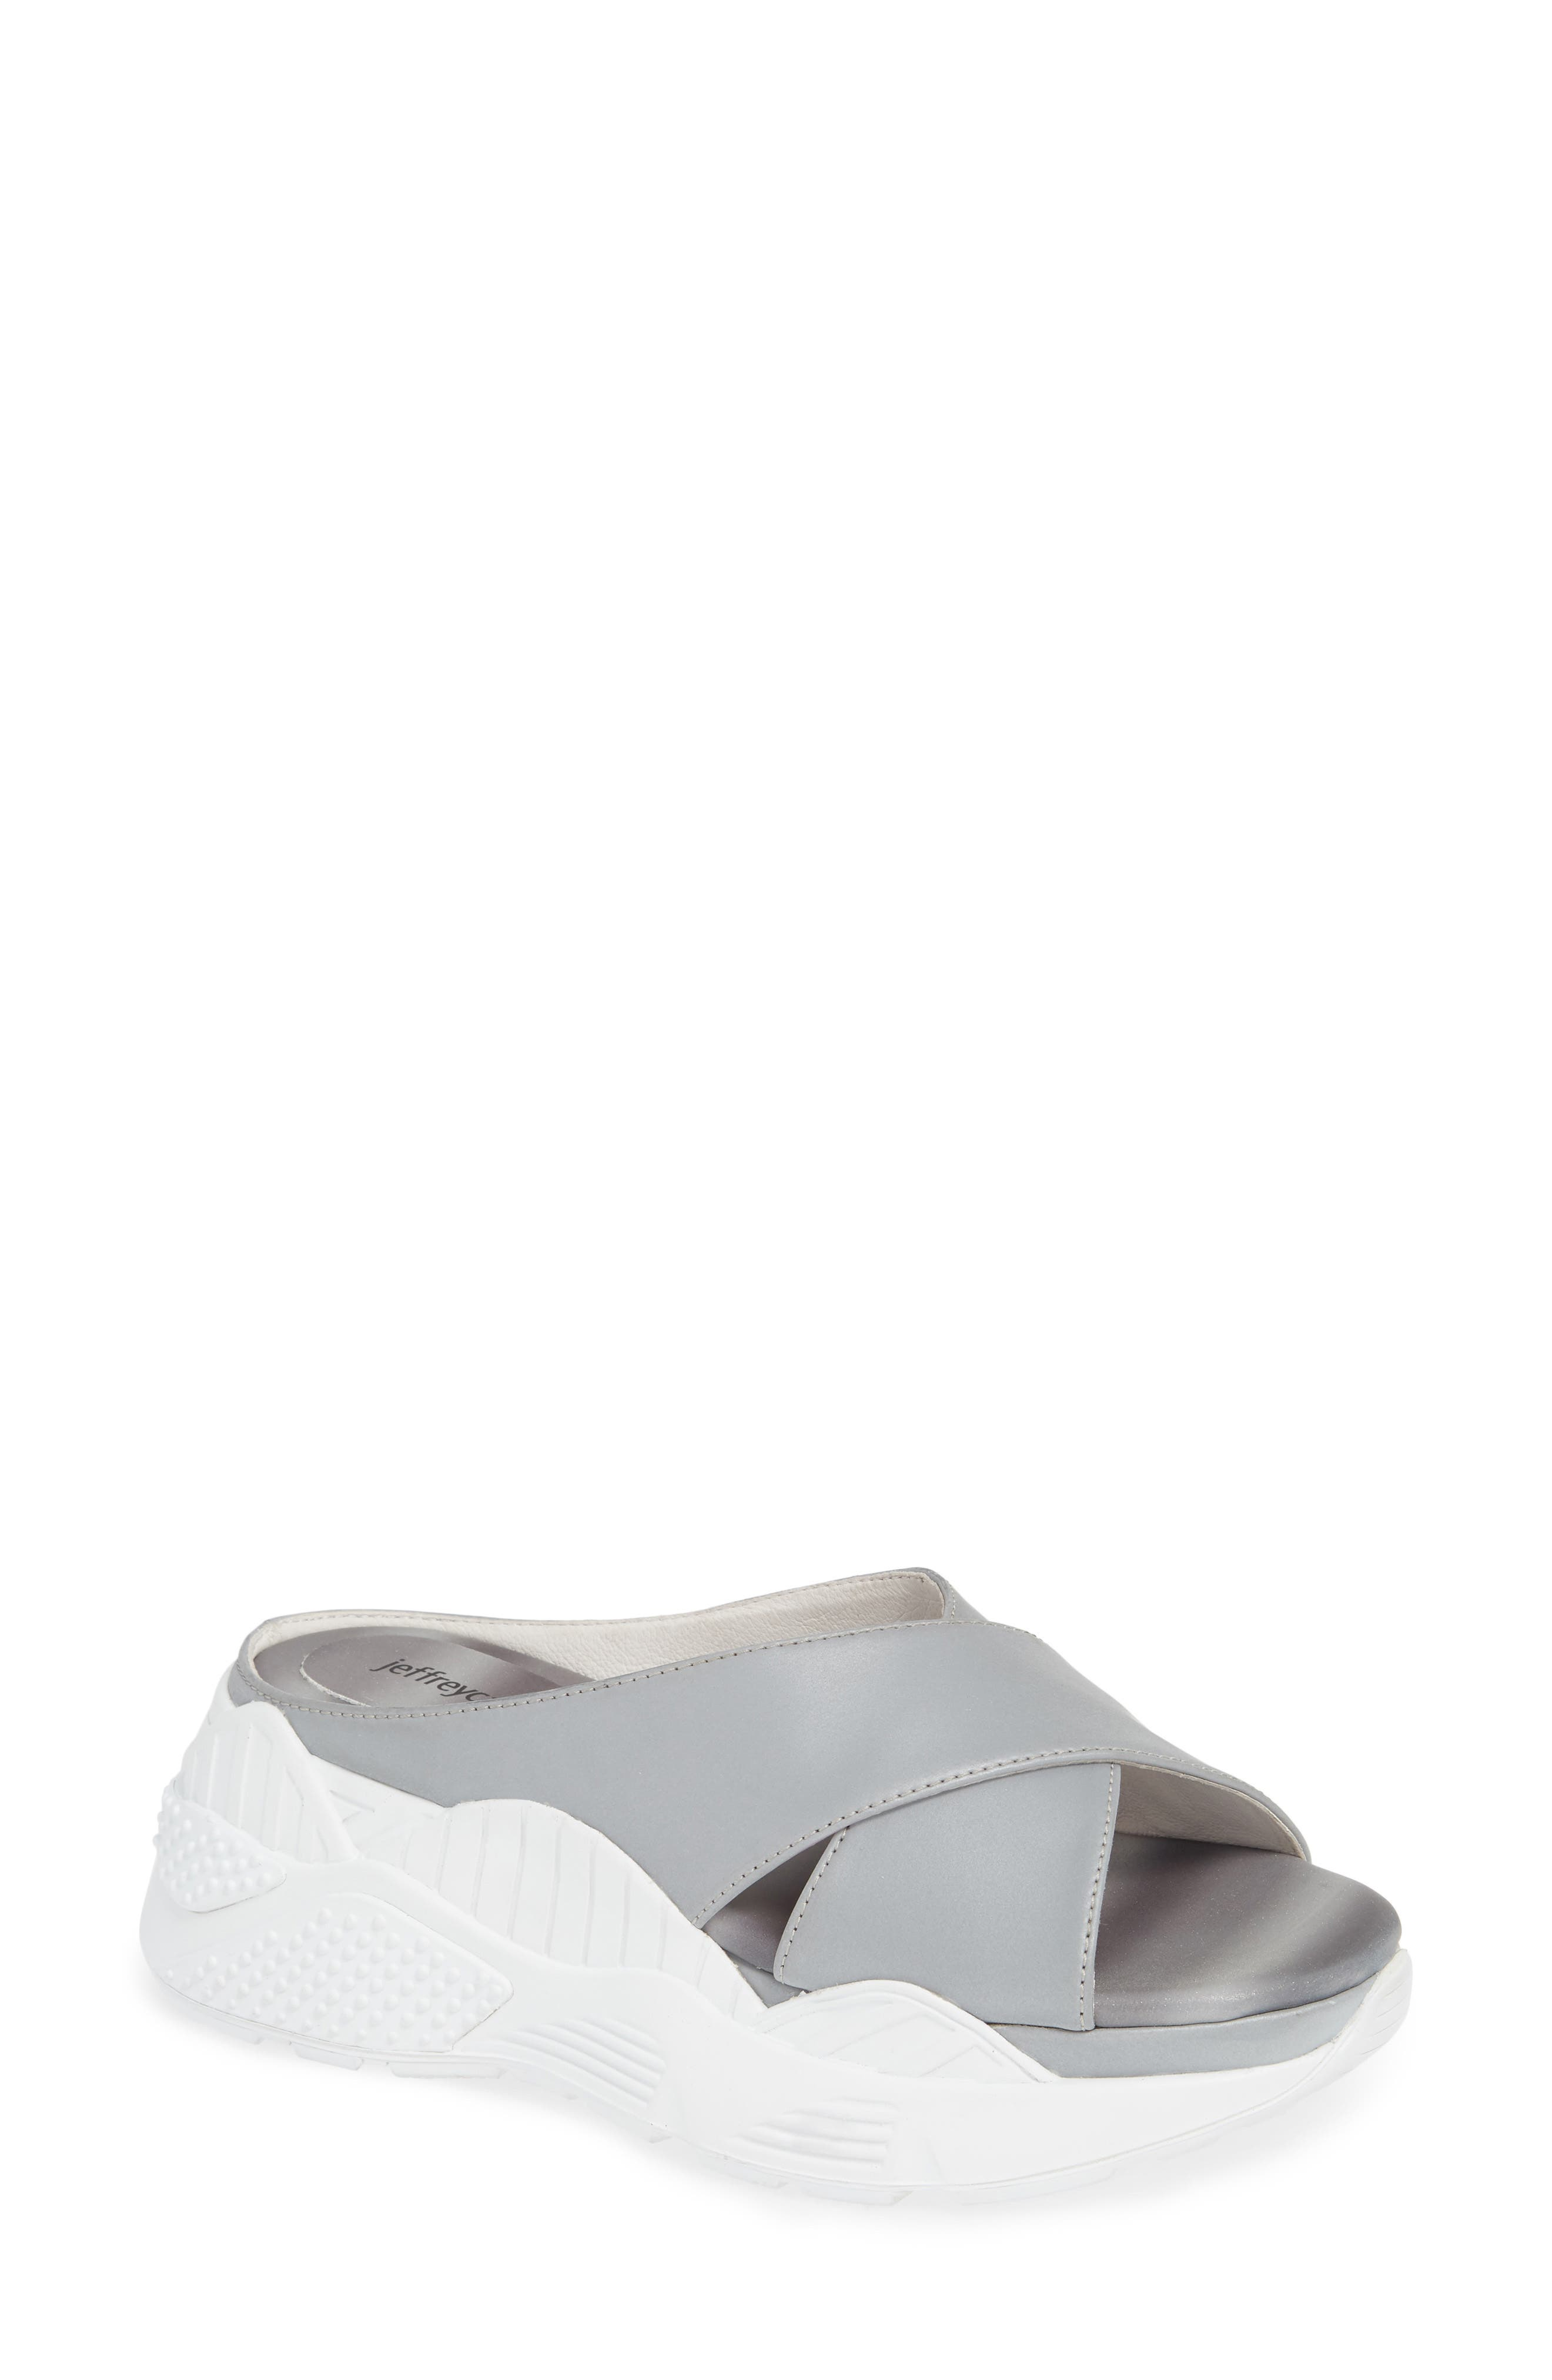 JEFFREY CAMPBELL Sector Sport Slide Sandal, Main, color, REFLECTIVE